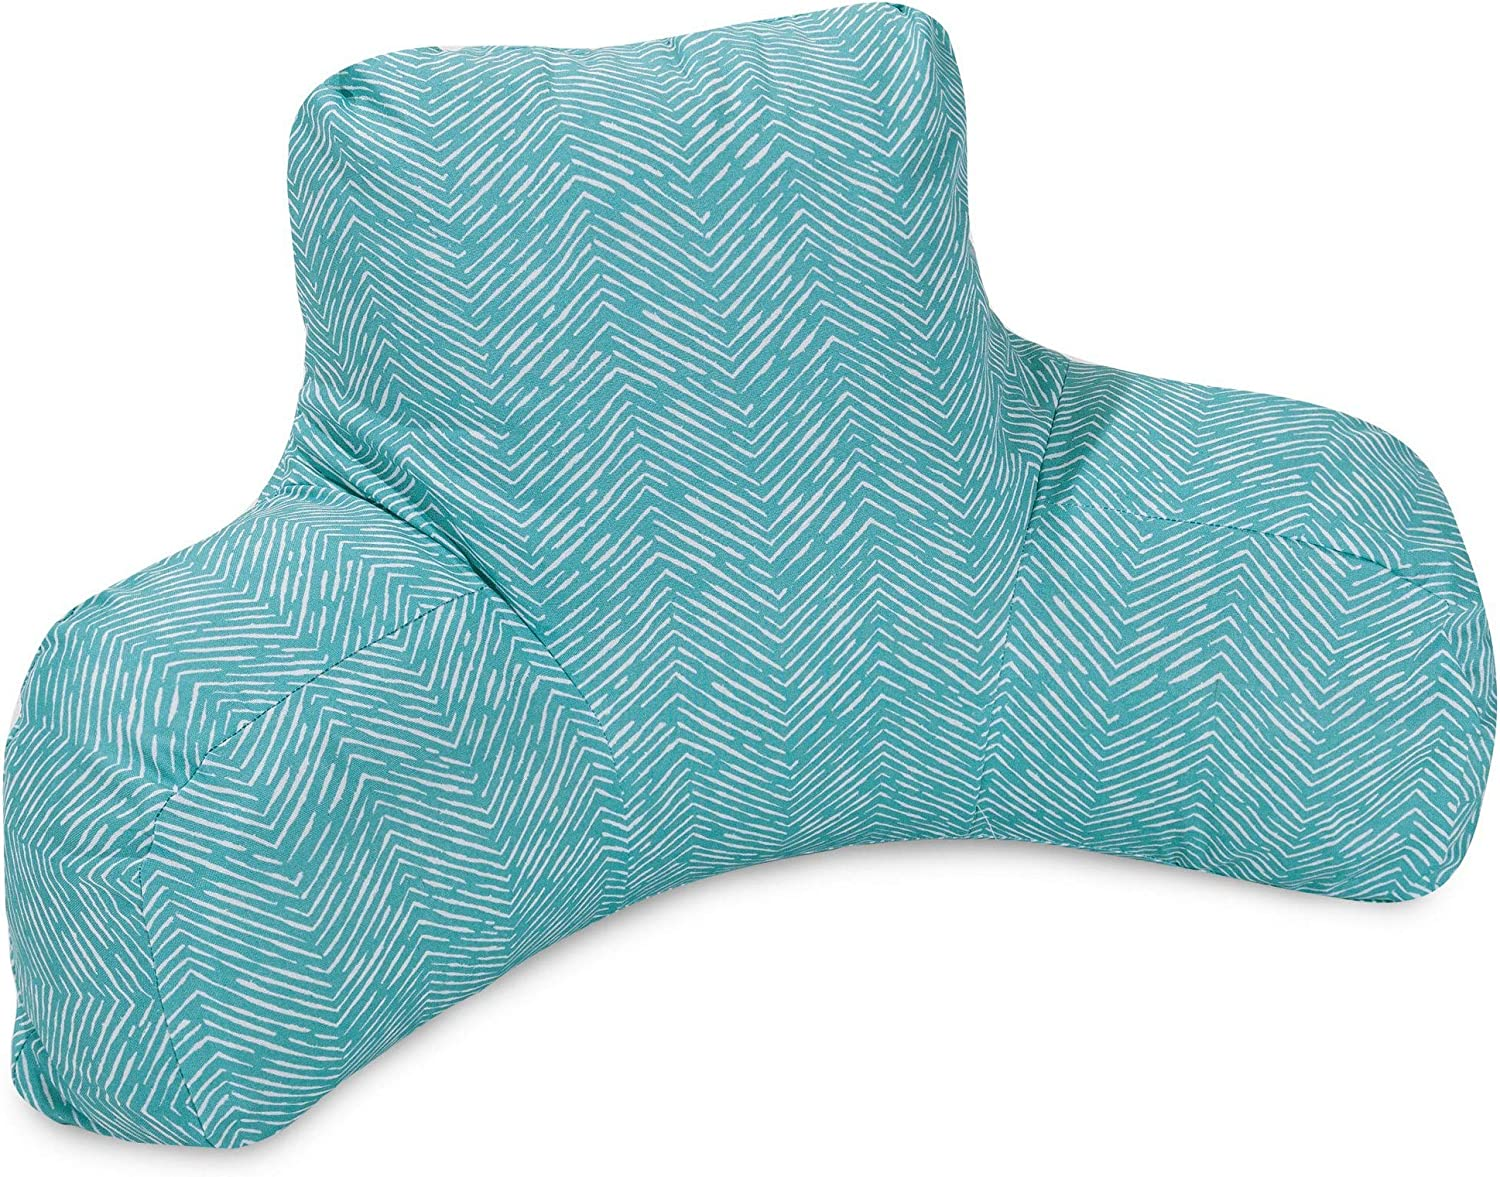 Majestic Home Goods Navajo Reading Pillow, Teal